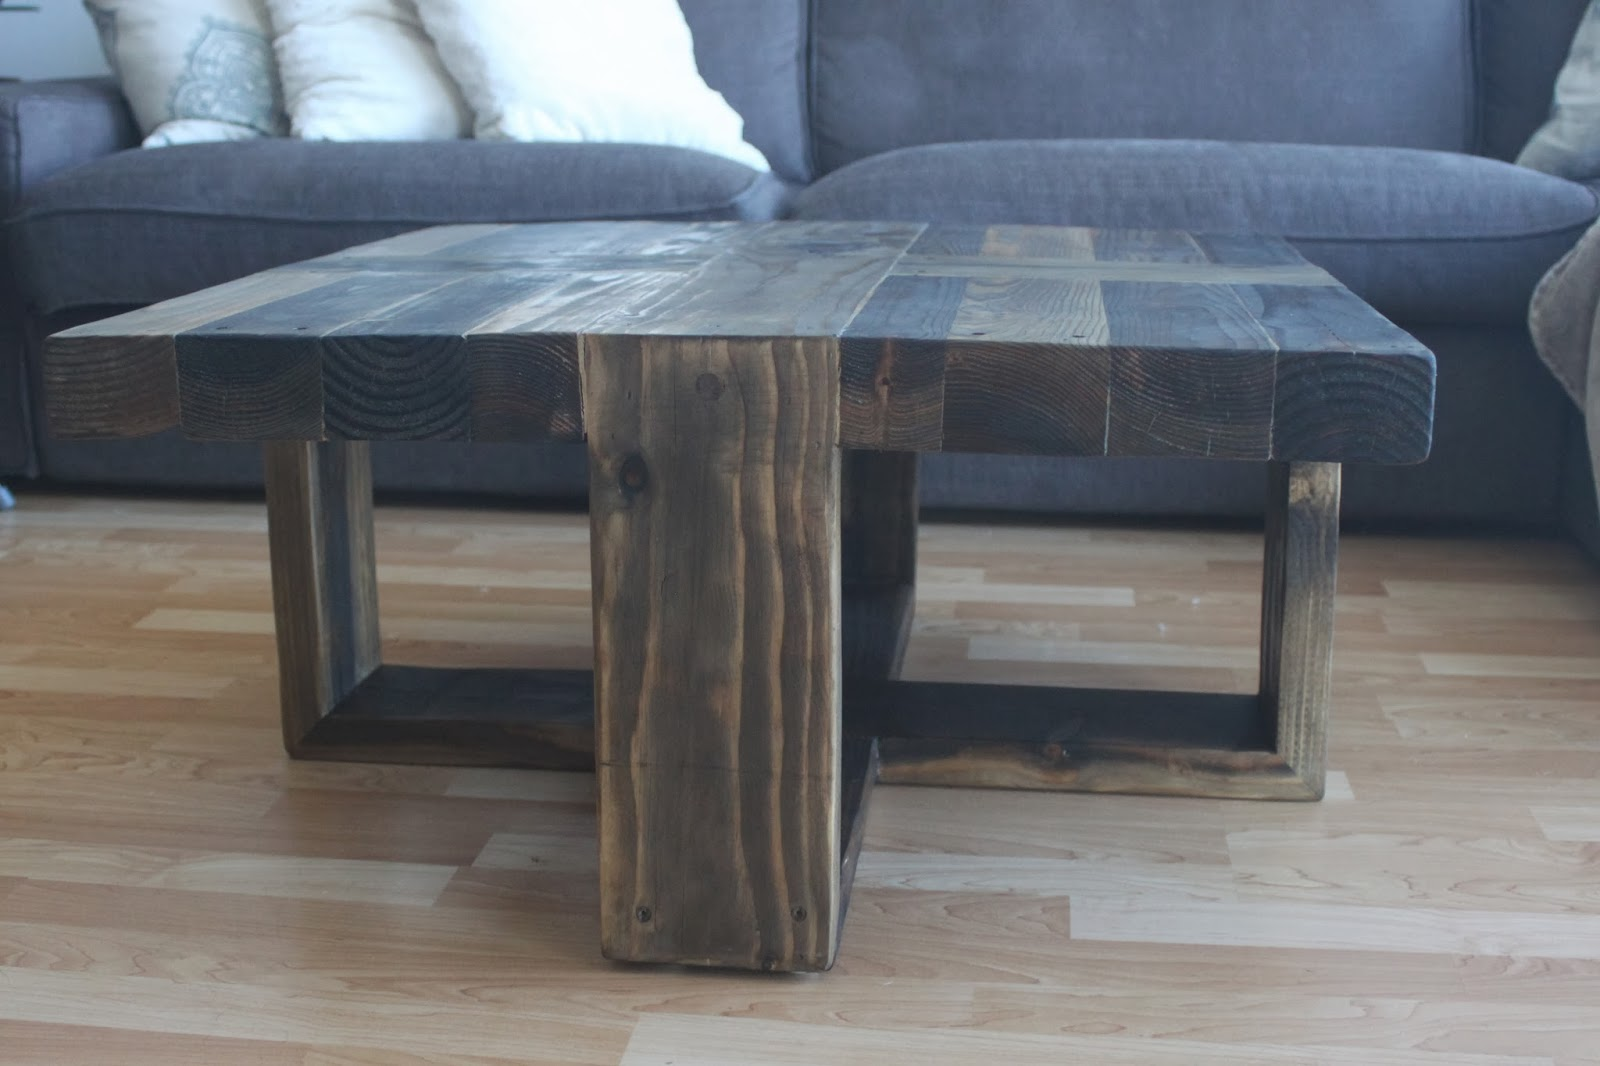 The polish carpenter unique rustic coffee table Unique rustic coffee tables